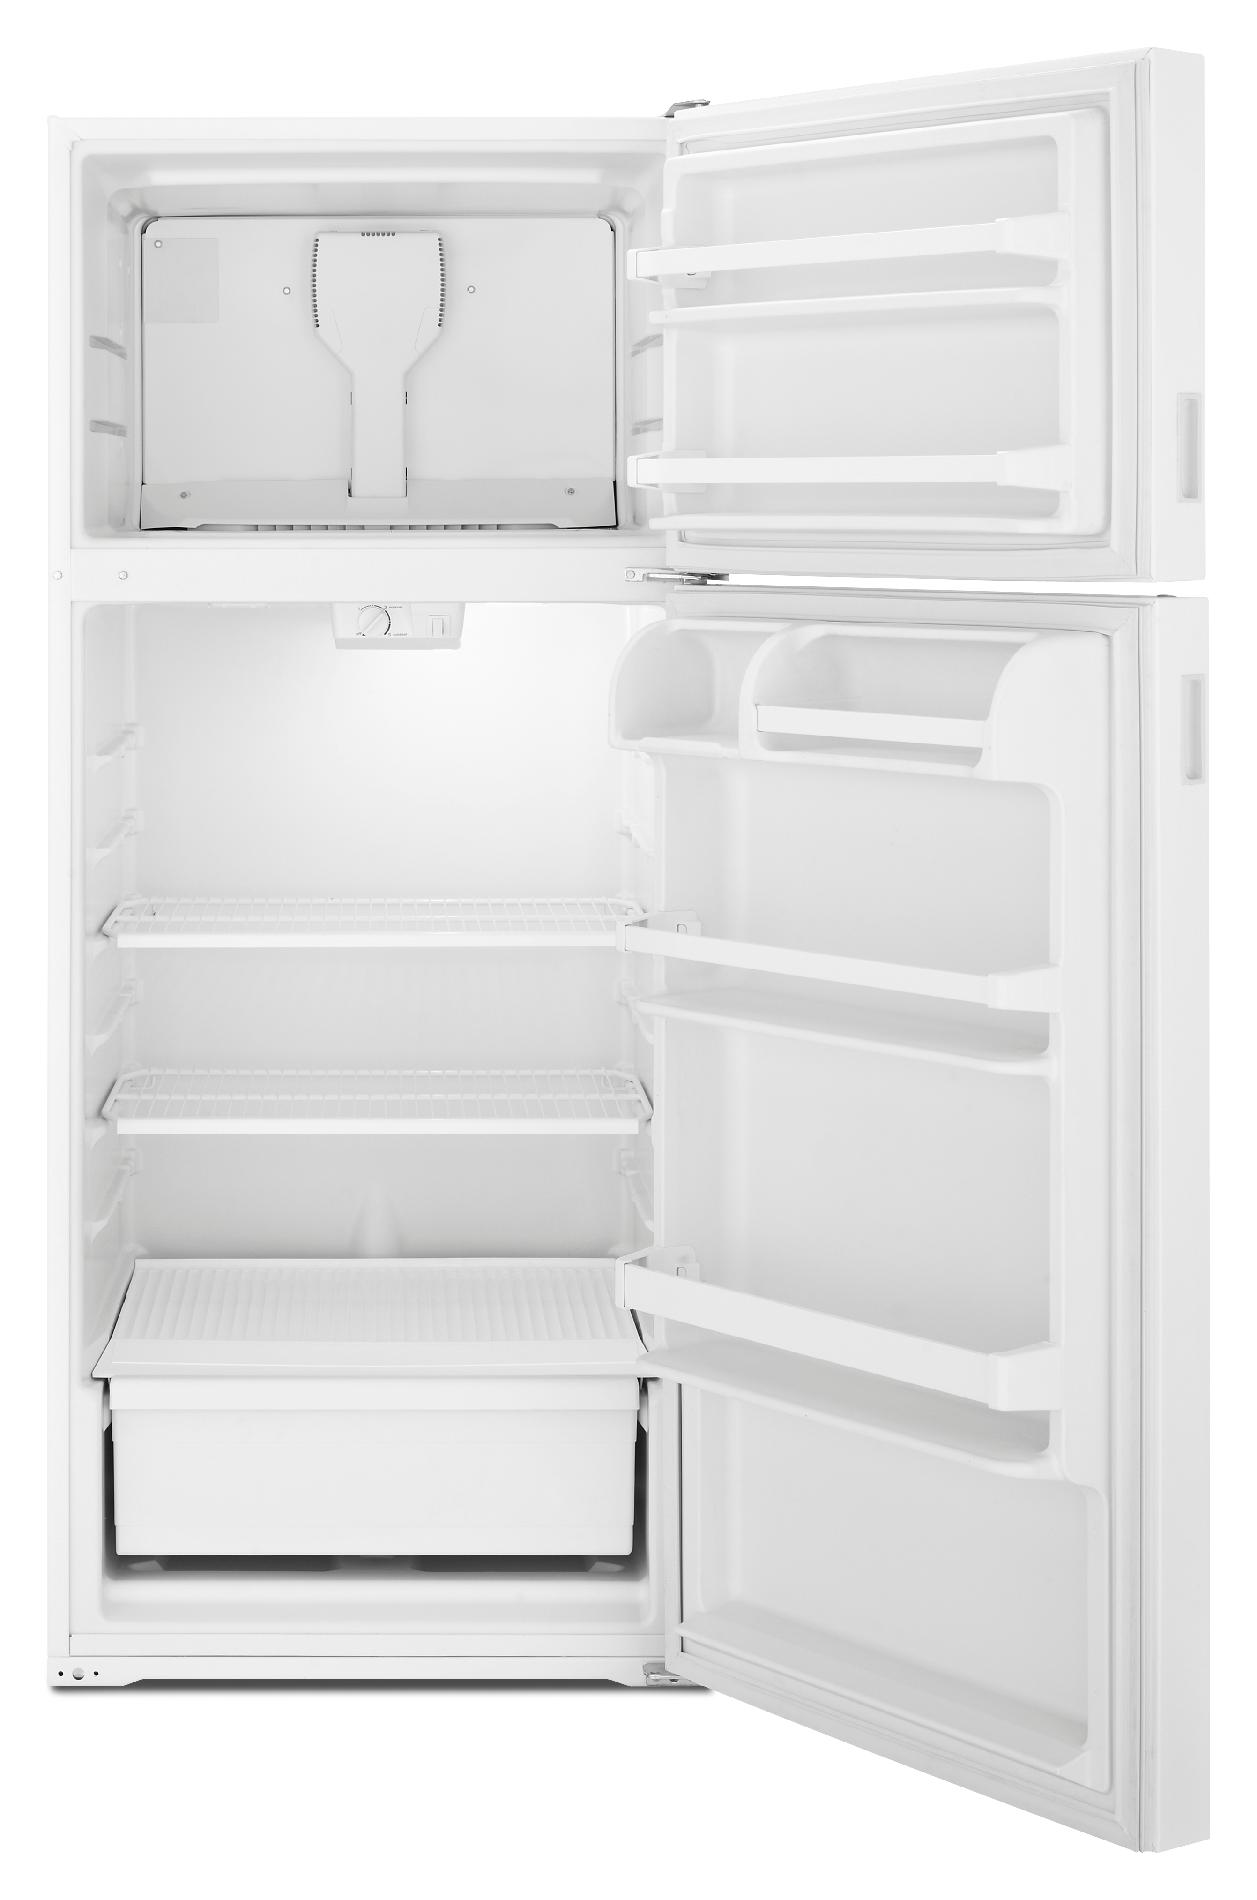 Amana Amana 18 cu ft top freezer refrigerator